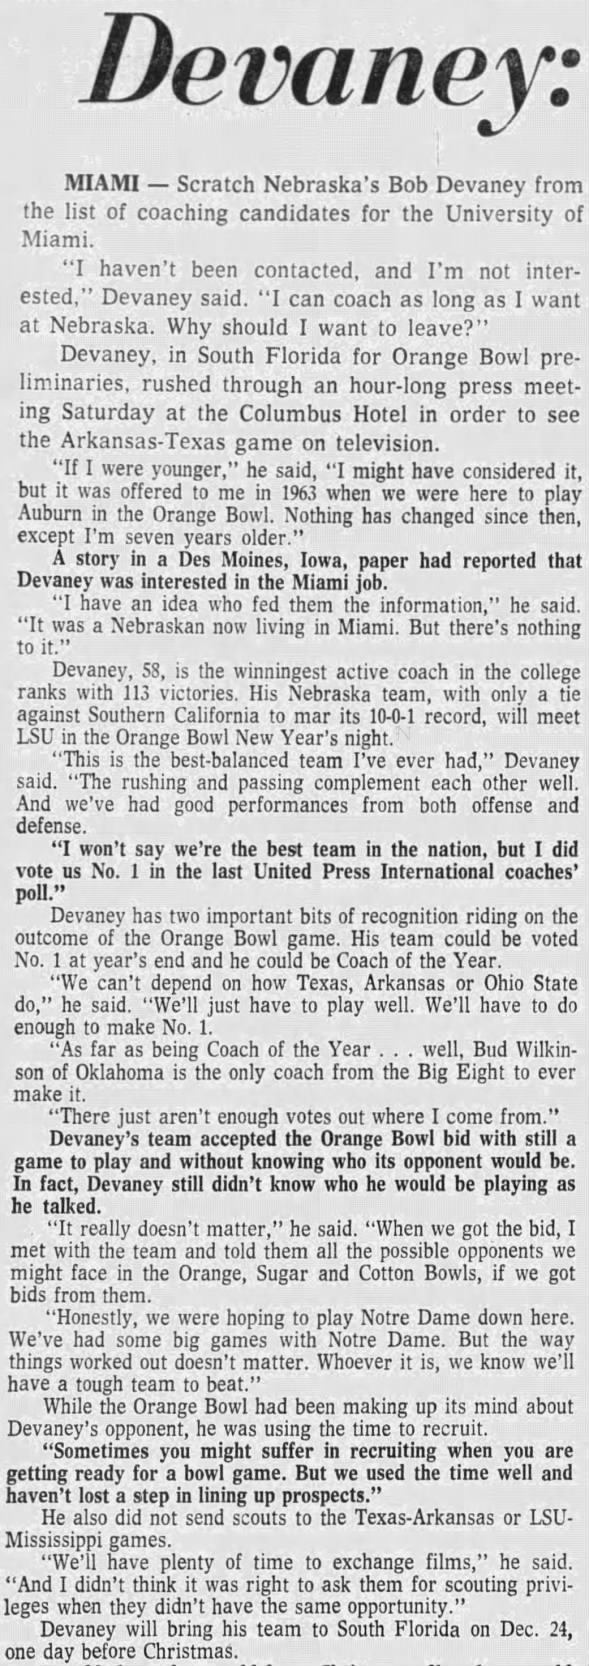 1970 Devaney no interest in Miami job